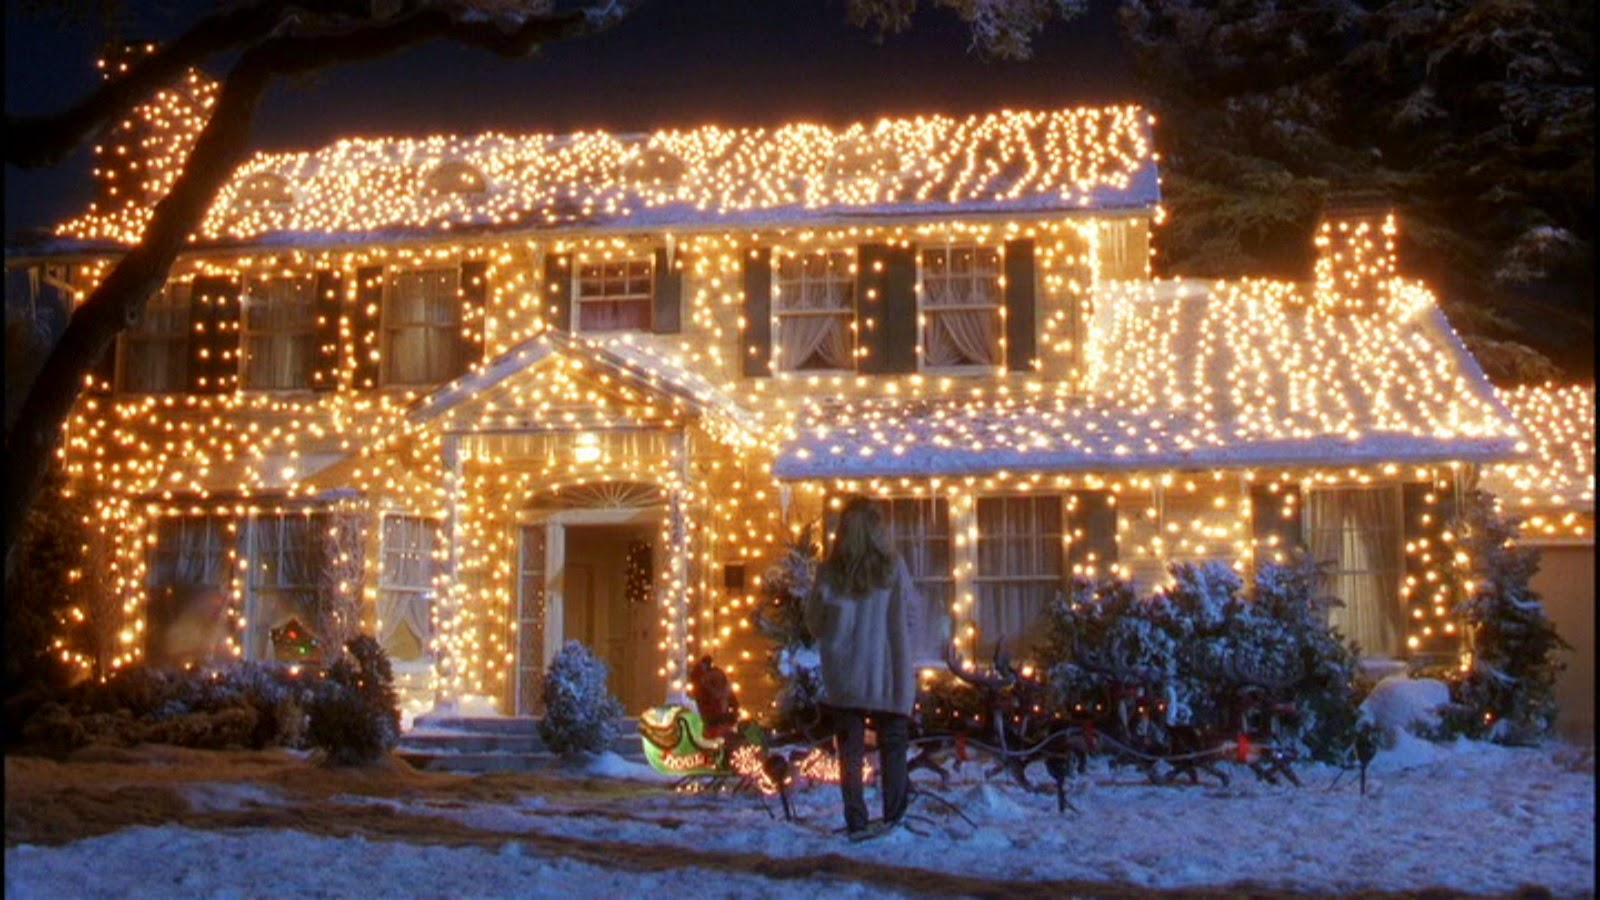 National Lampoons Christmas Vacation Outdoor Decorations :